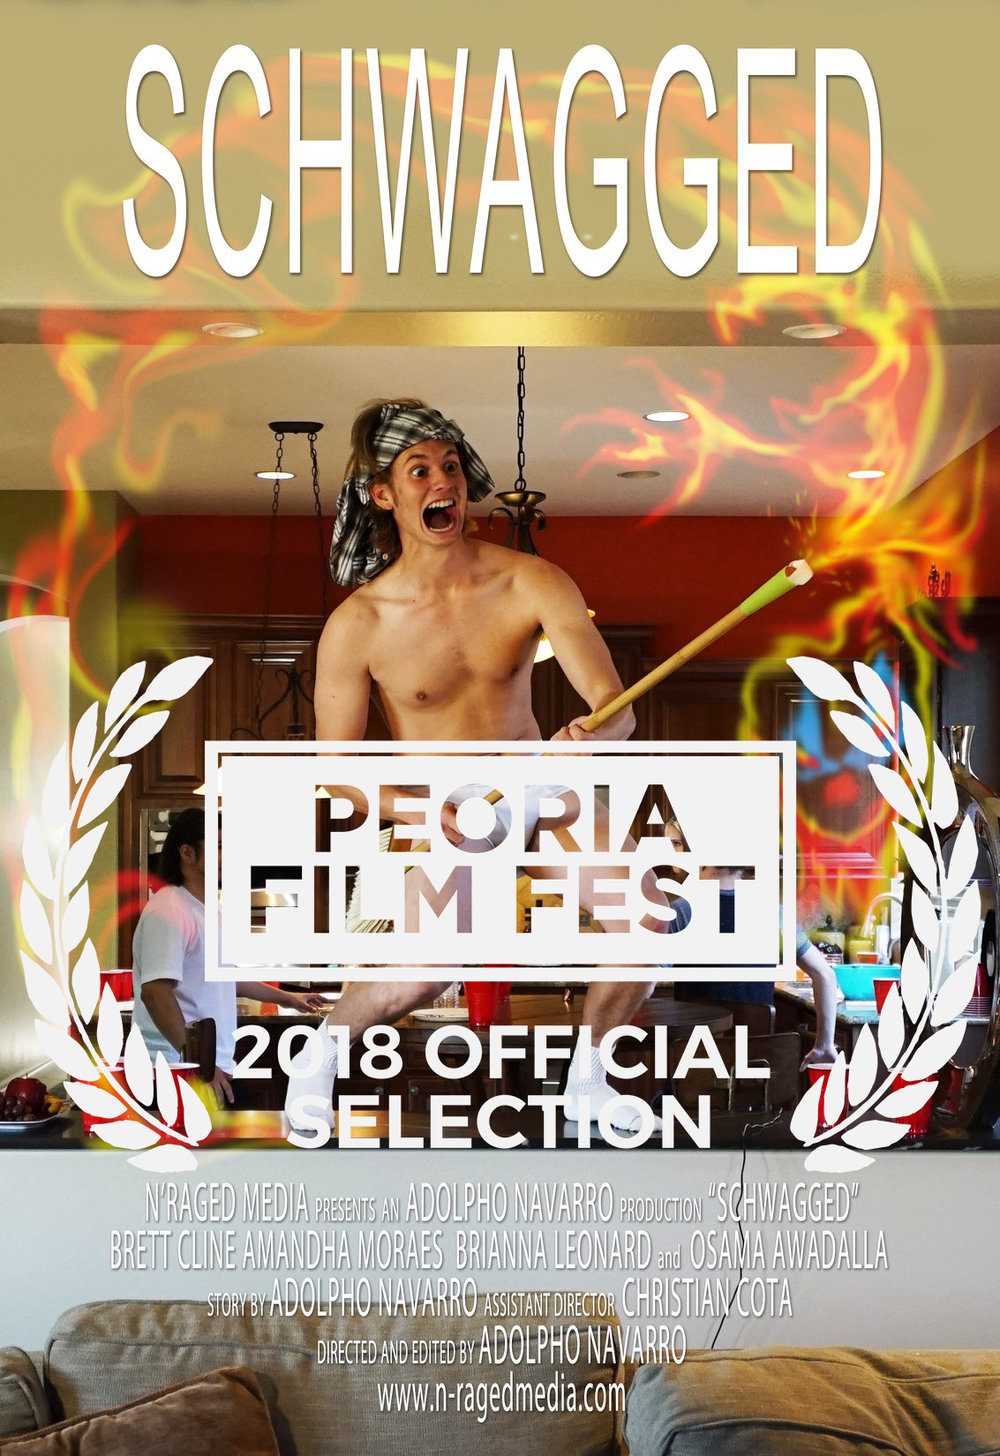 1st Place Film - SchwaggedIFP Beat The Clock 48 Hour Film Challenge 20181st Place Film - Audience Favorite - Best Director - Adolpho Navarro - Best Editor - Adolpho Navarro - Best Cinematography - Best Trailer - Best use of prop - Fork Best Art Direction